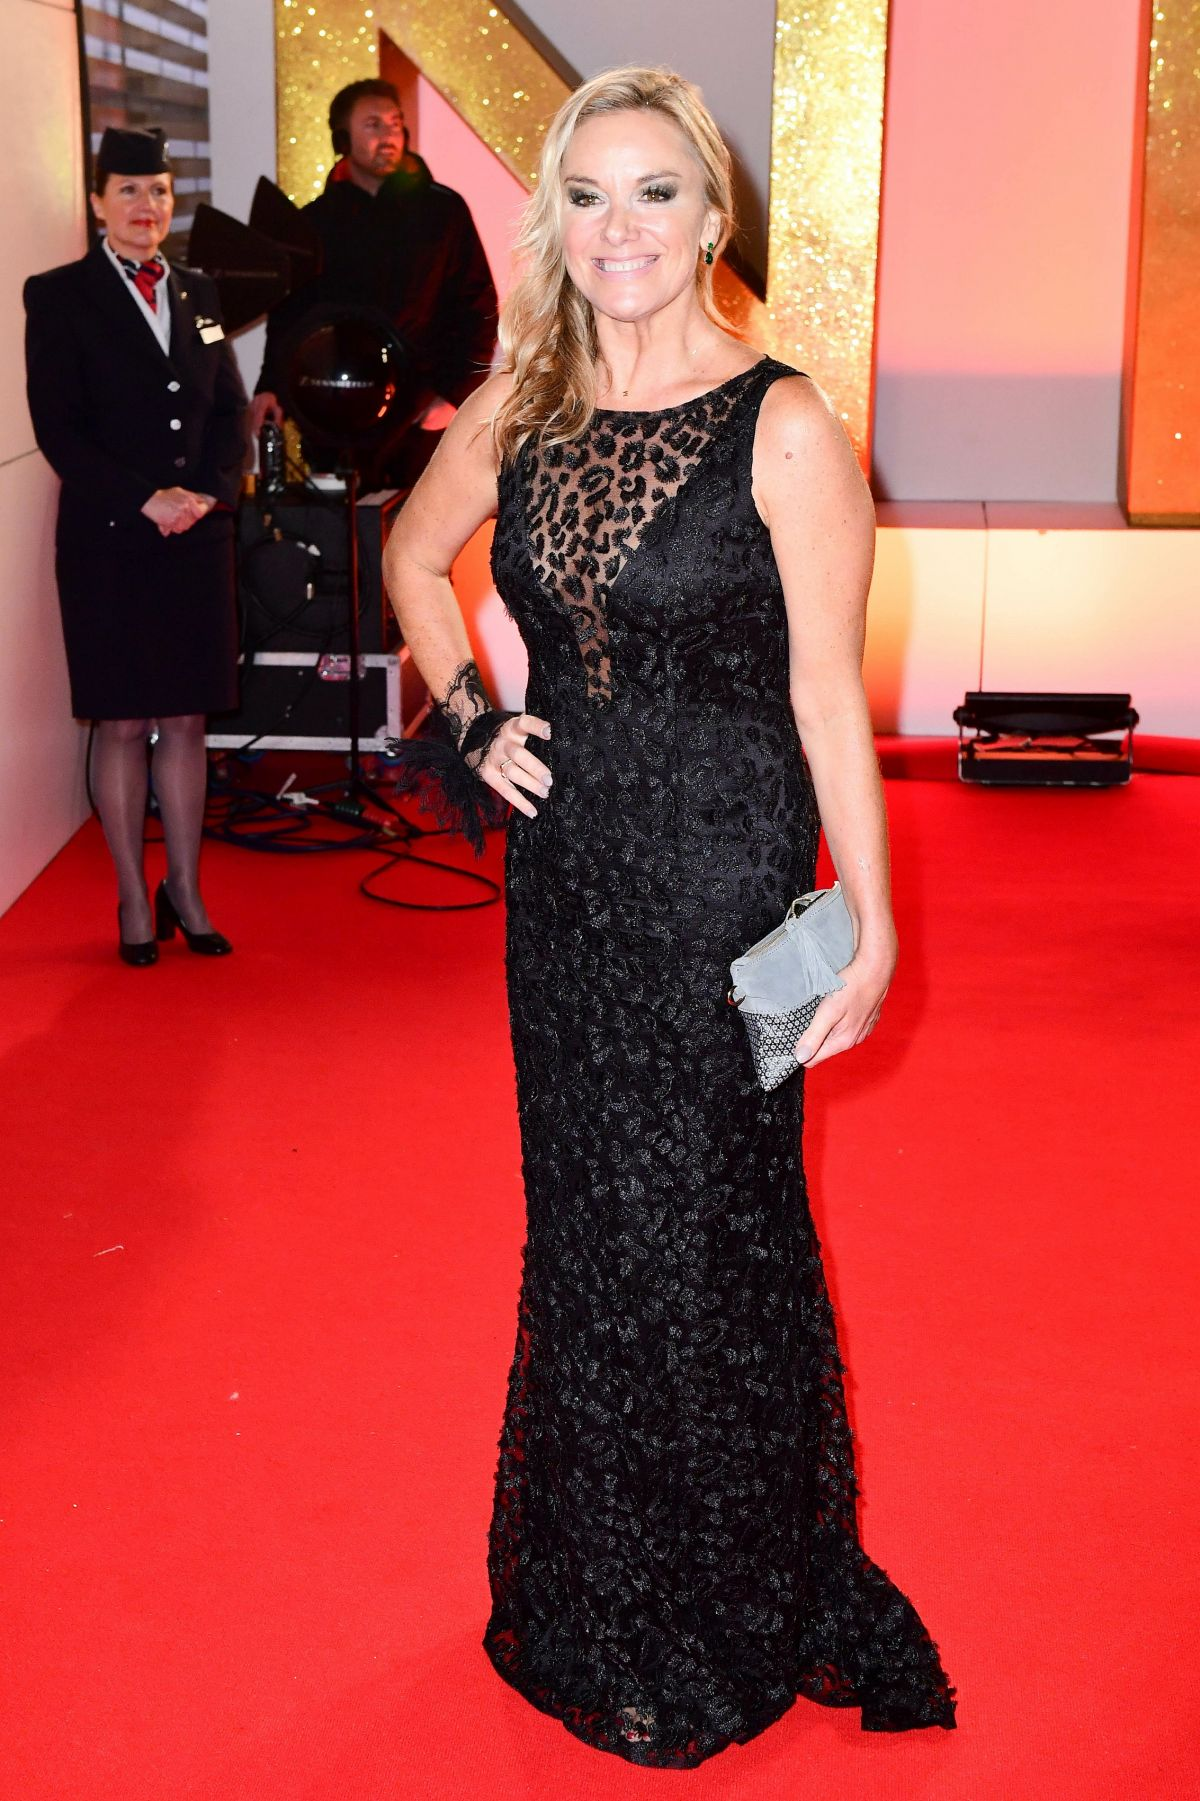 tamzin outhwaite - photo #41